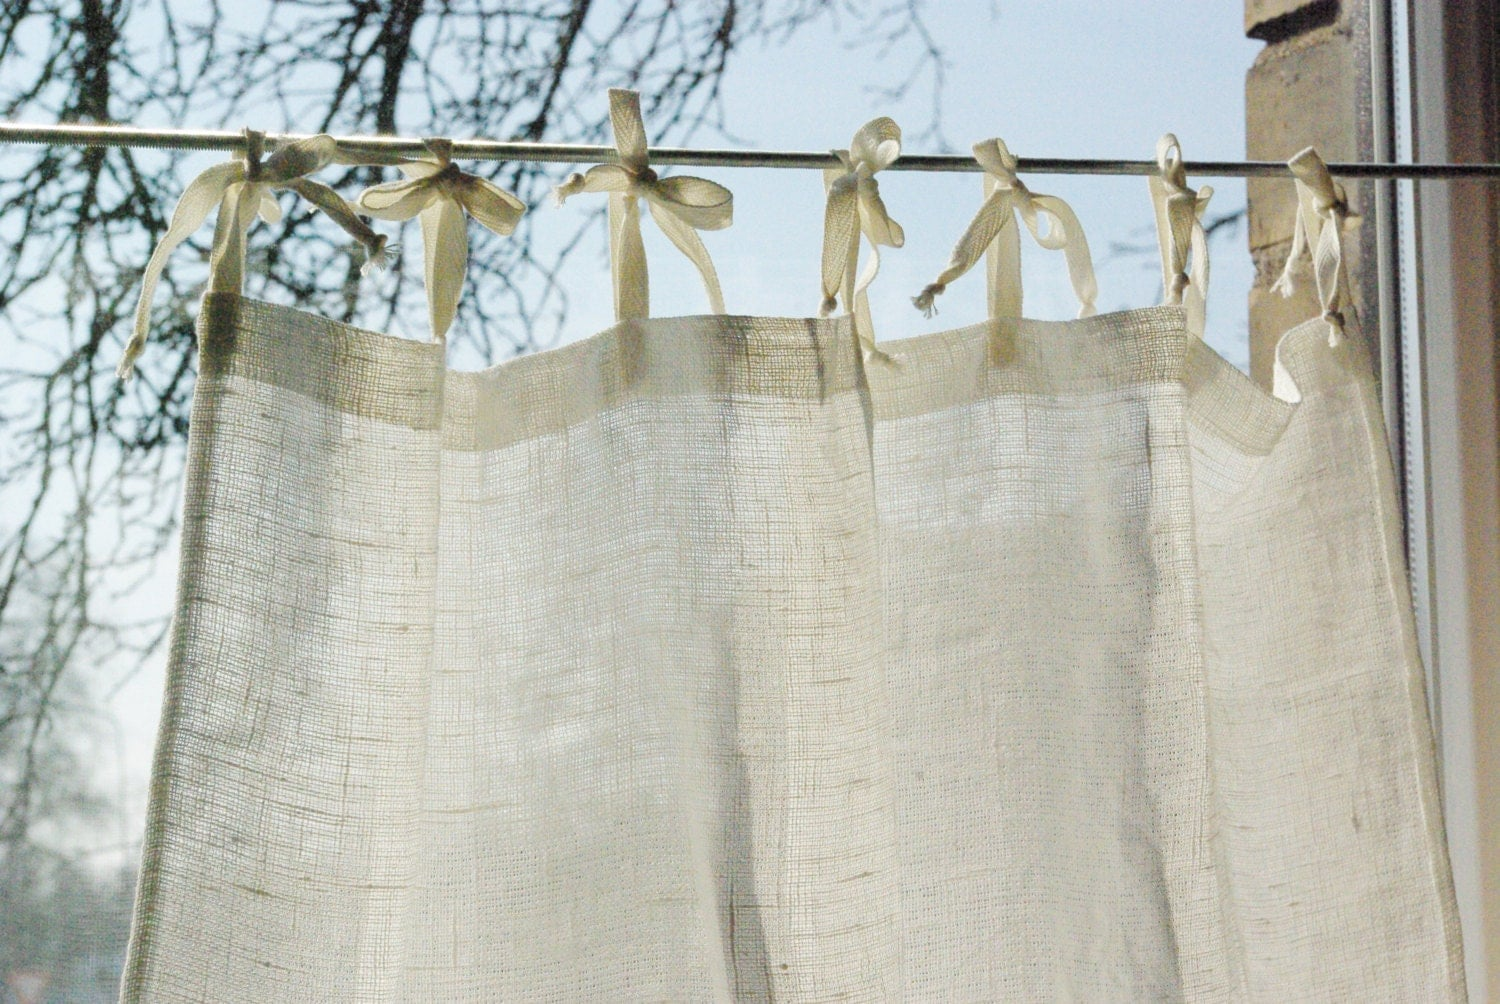 Cafe curtains for bathroom - Tie Top Curtain Panel Natural White Rustic Linen French Style Kitchen Cafe Curtains Bathroom Window Curtains